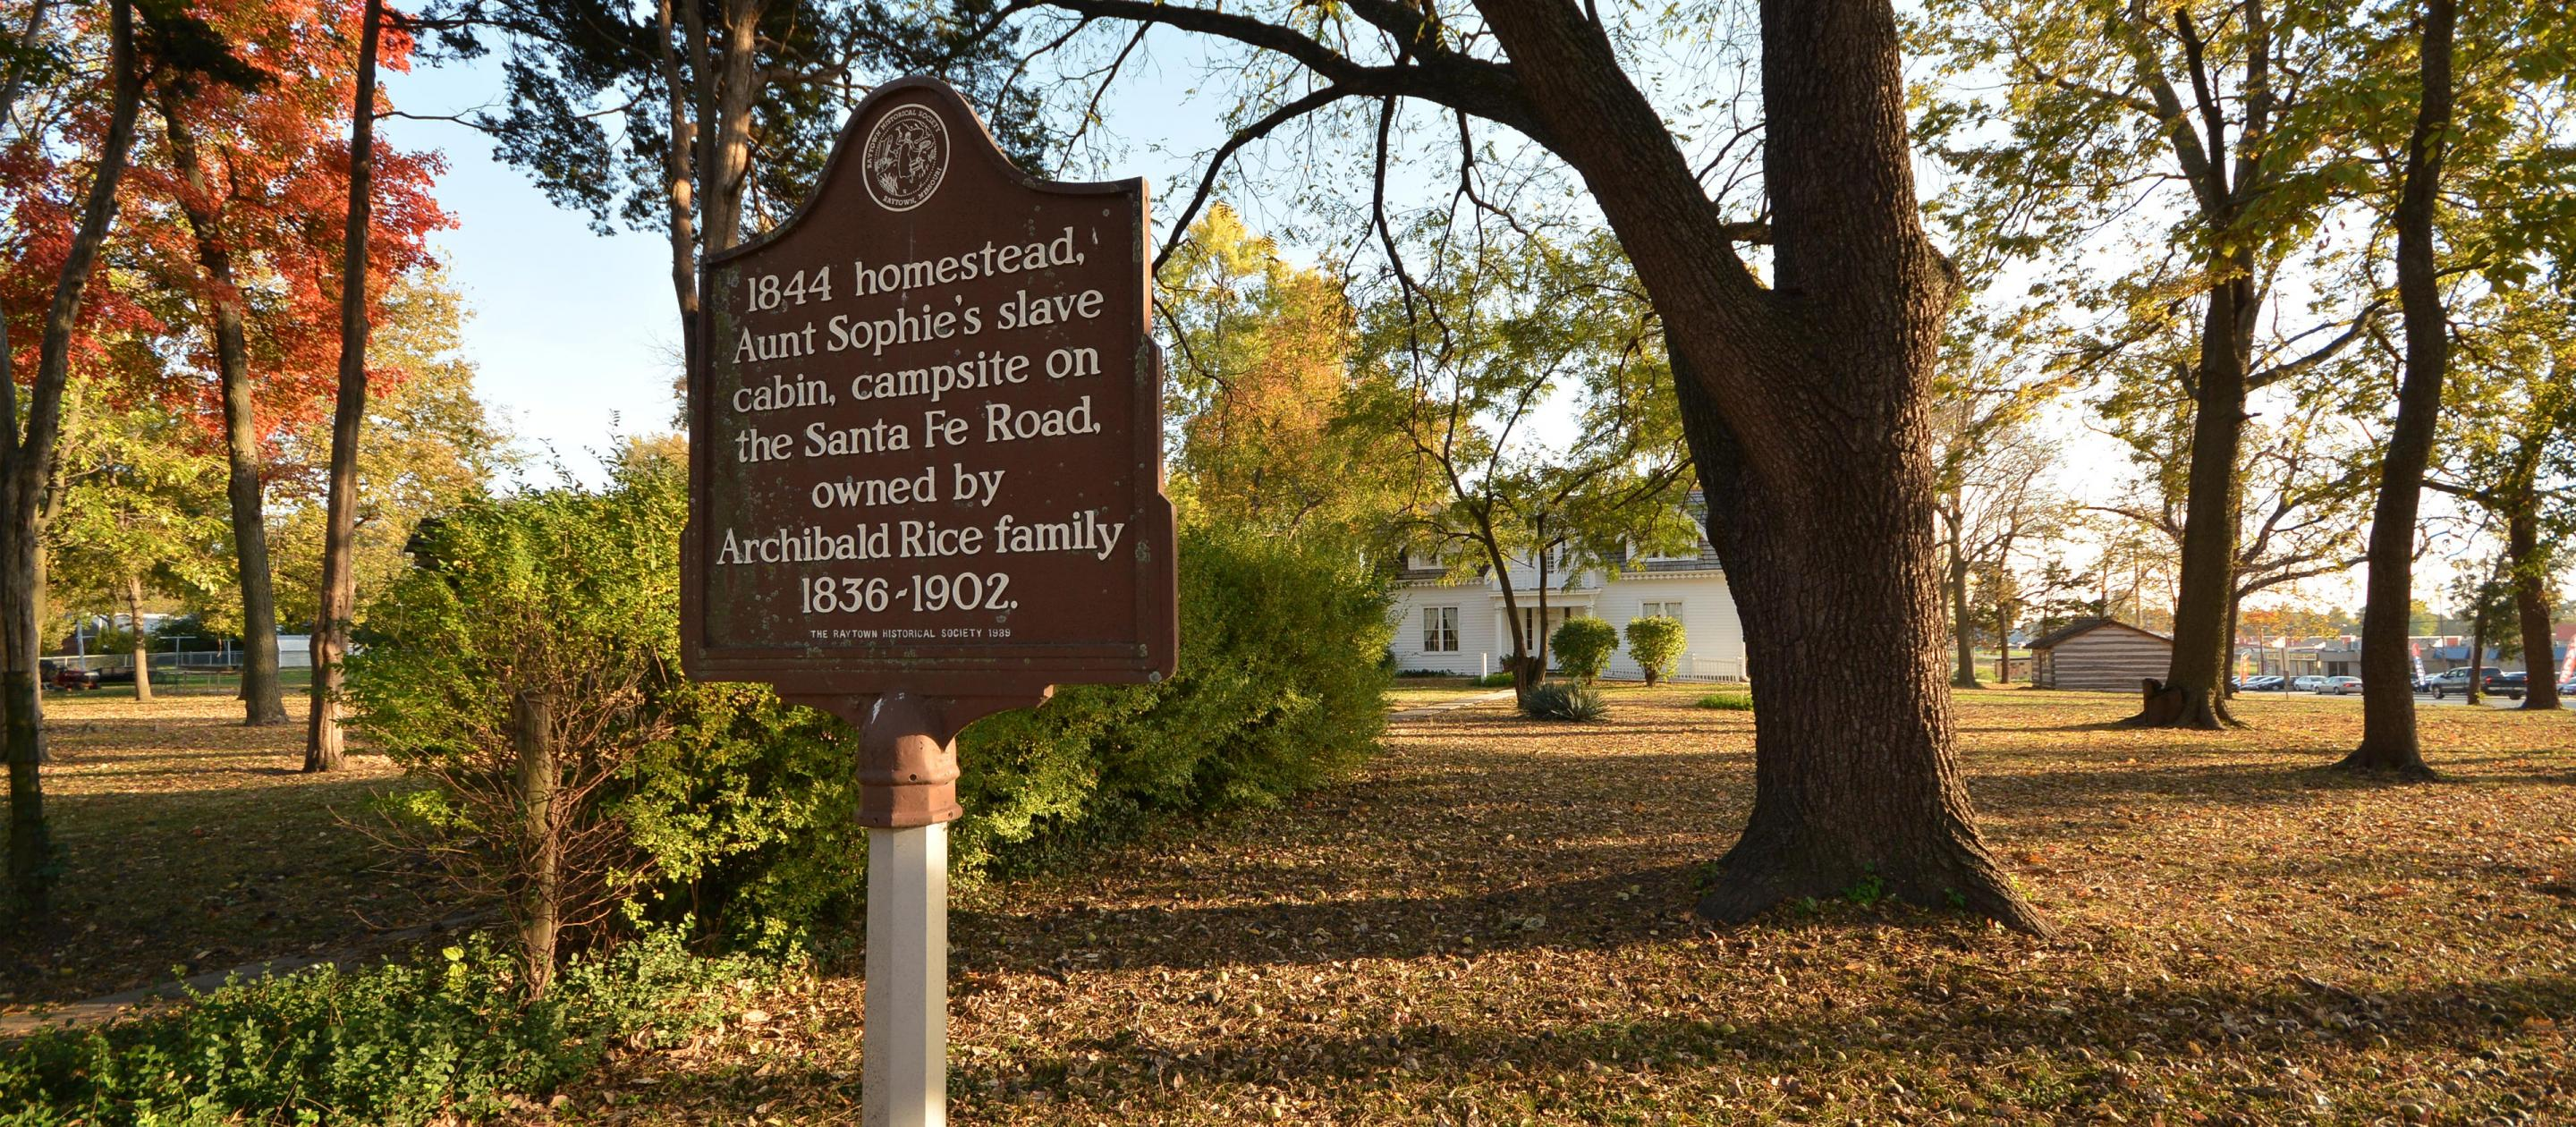 A historical marker on the grounds